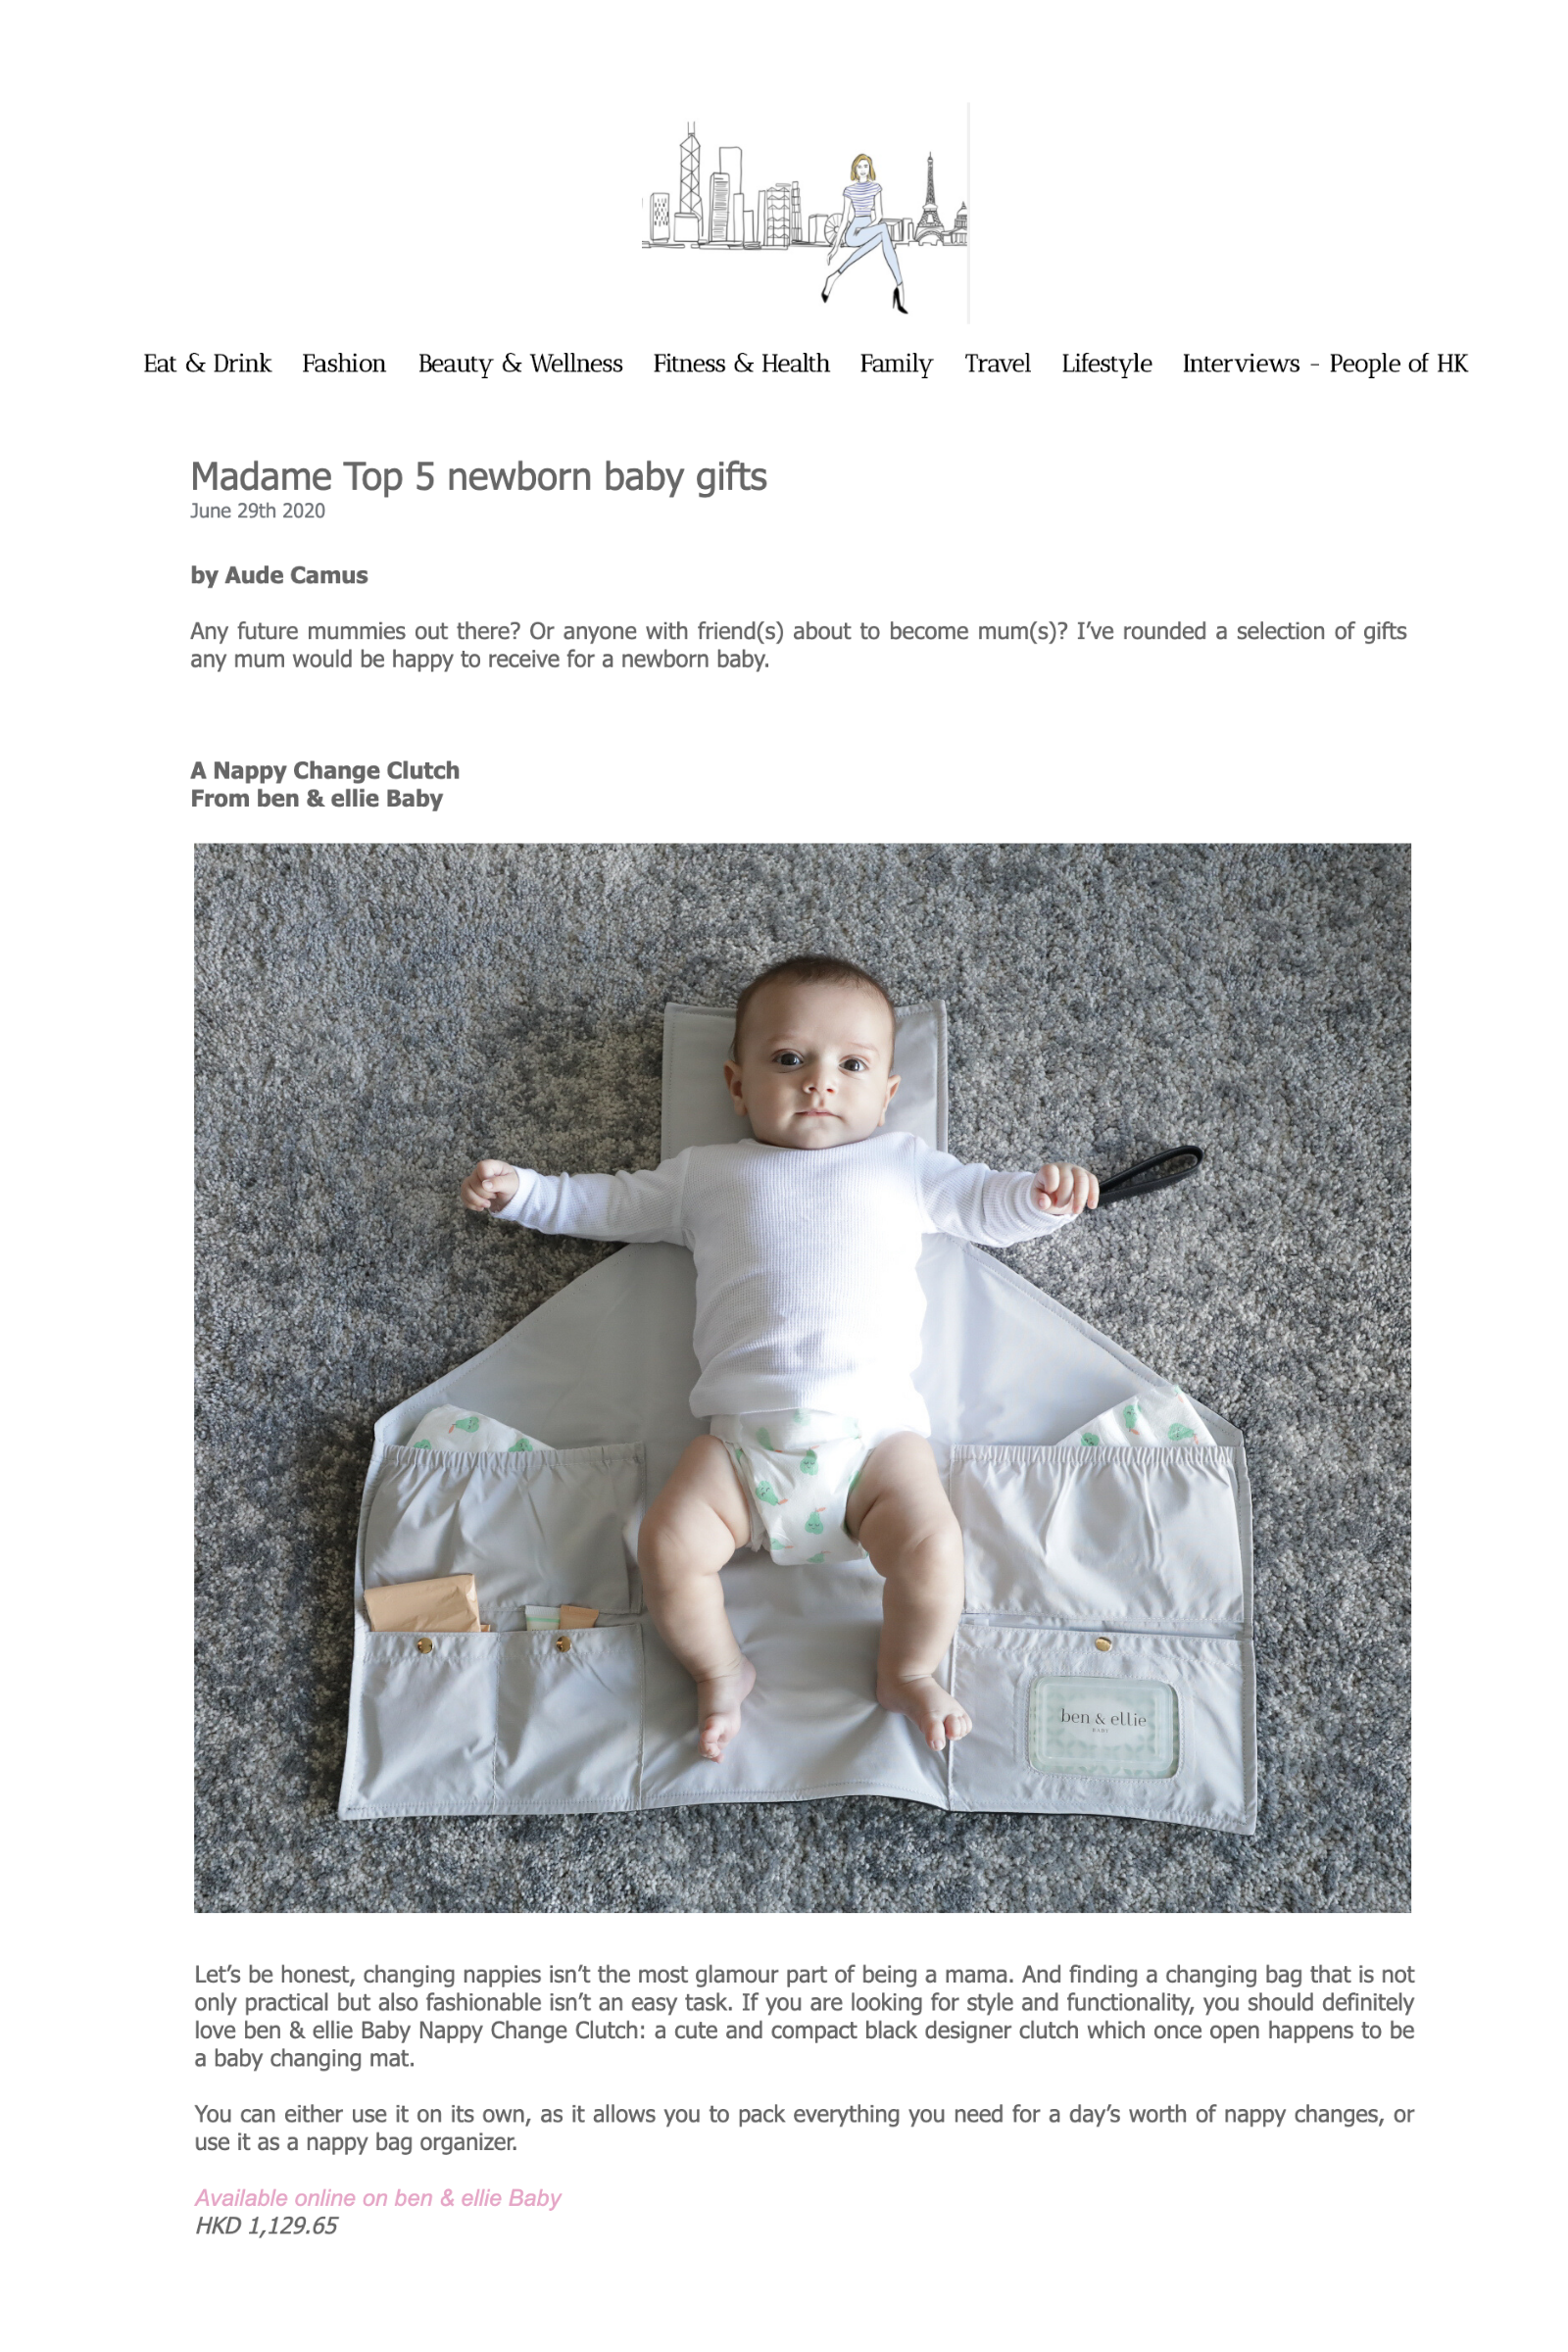 Ben & Ellie Baby Nappy Change Clutch featured in Hong Kong Madame's top 5 best baby gifts